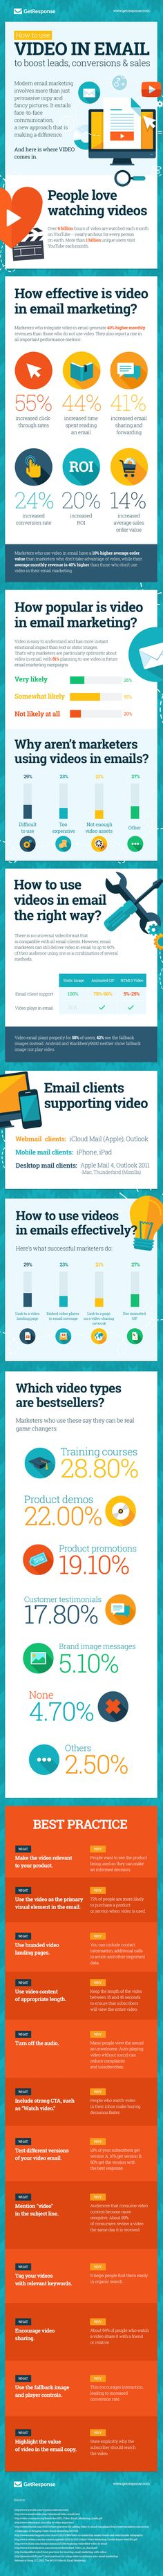 Video in Email Here is What You Need to Know | socialmouths.com/blog/2014/07/08/video-in-email/